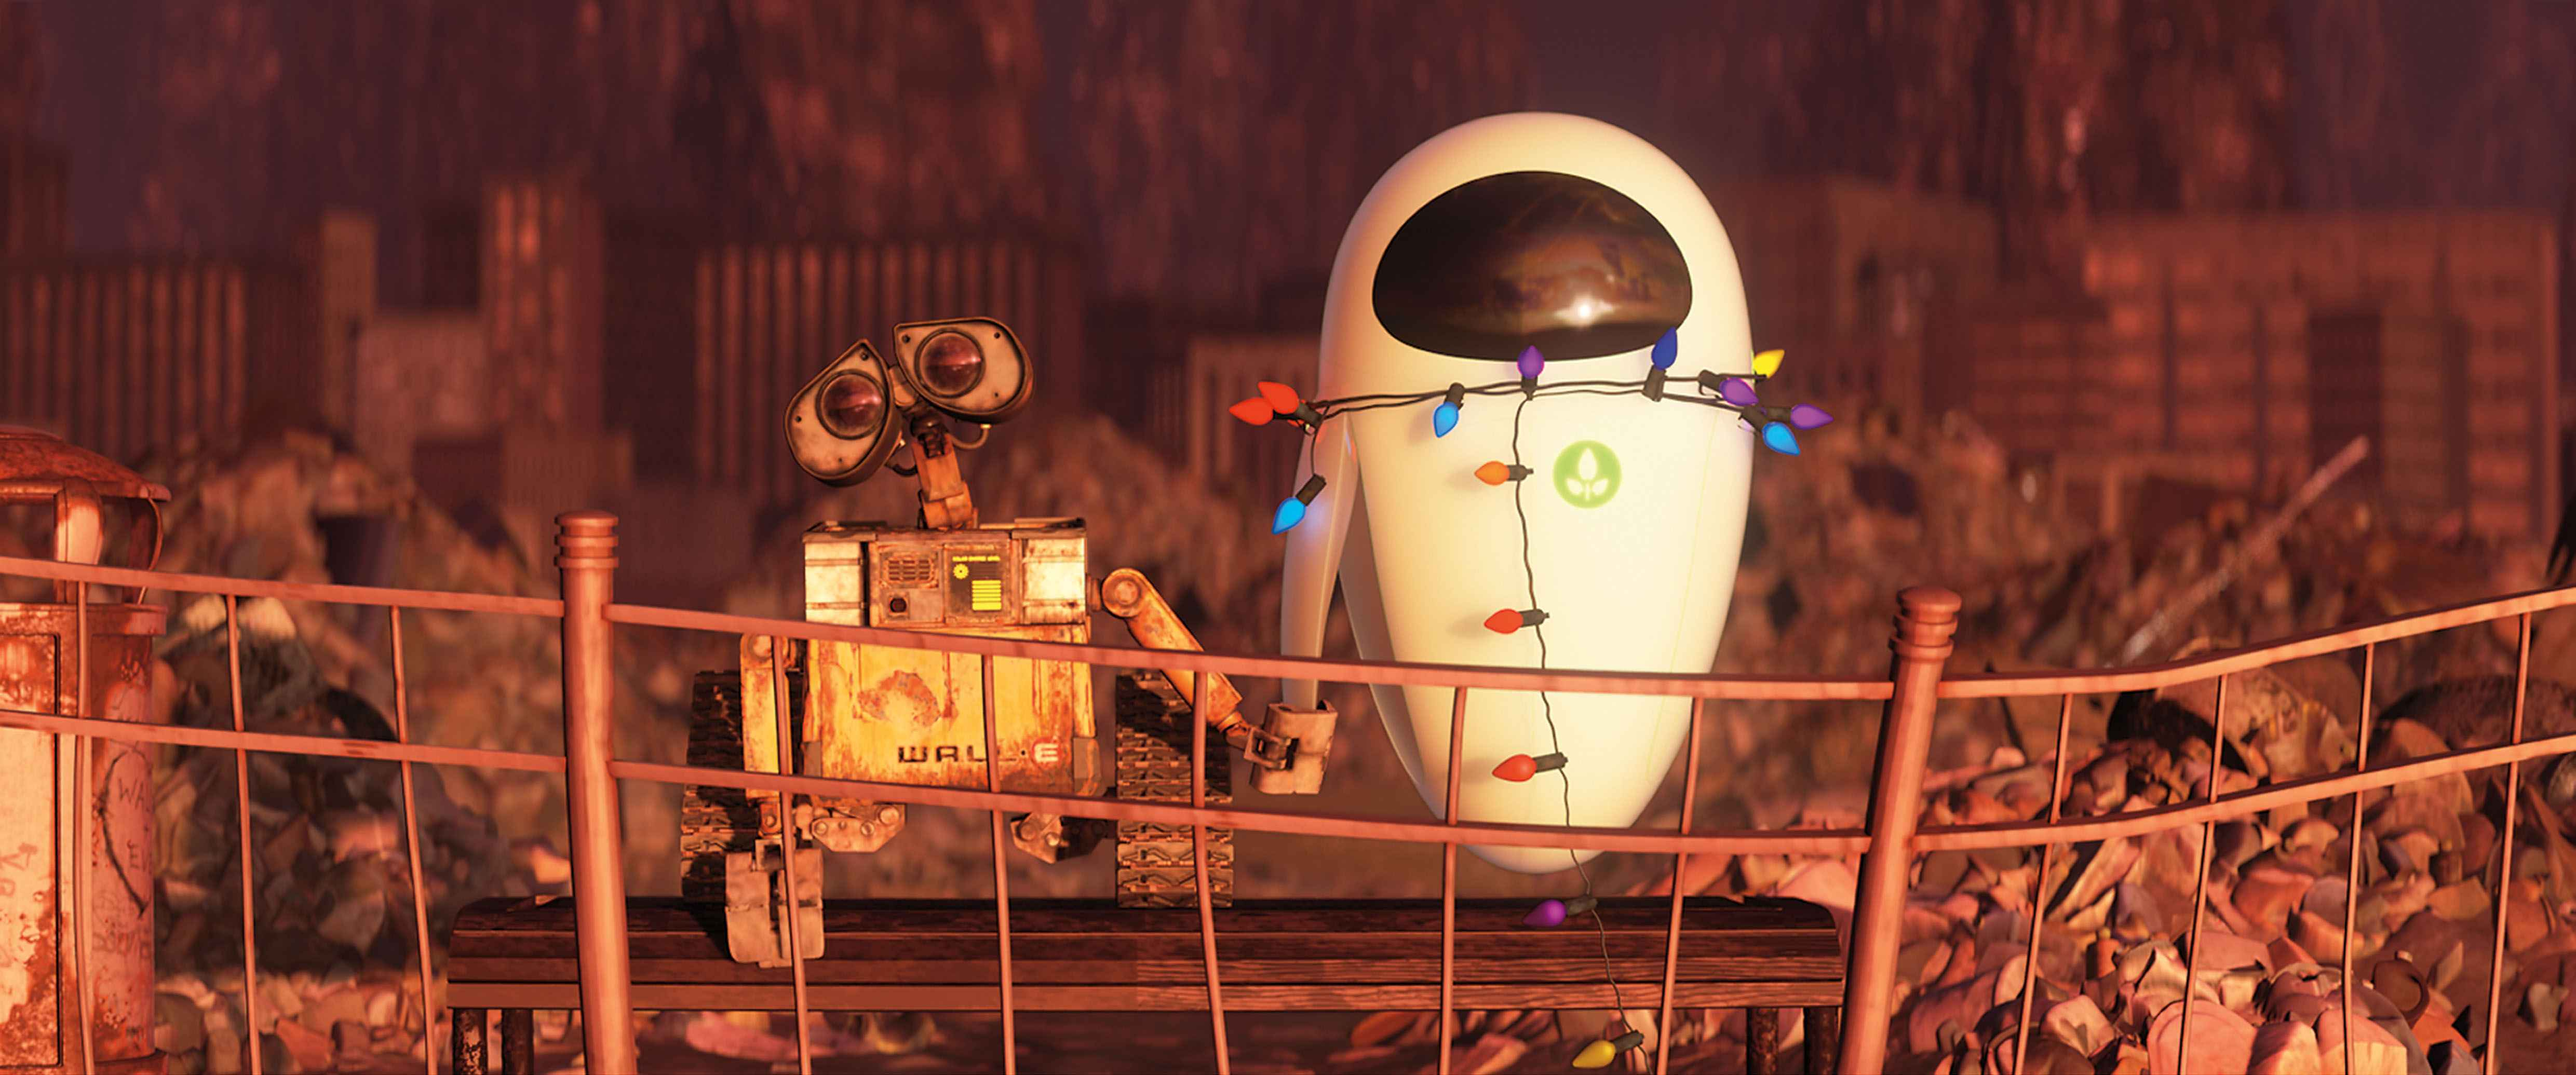 now is the time to revisit walle perhaps the finest